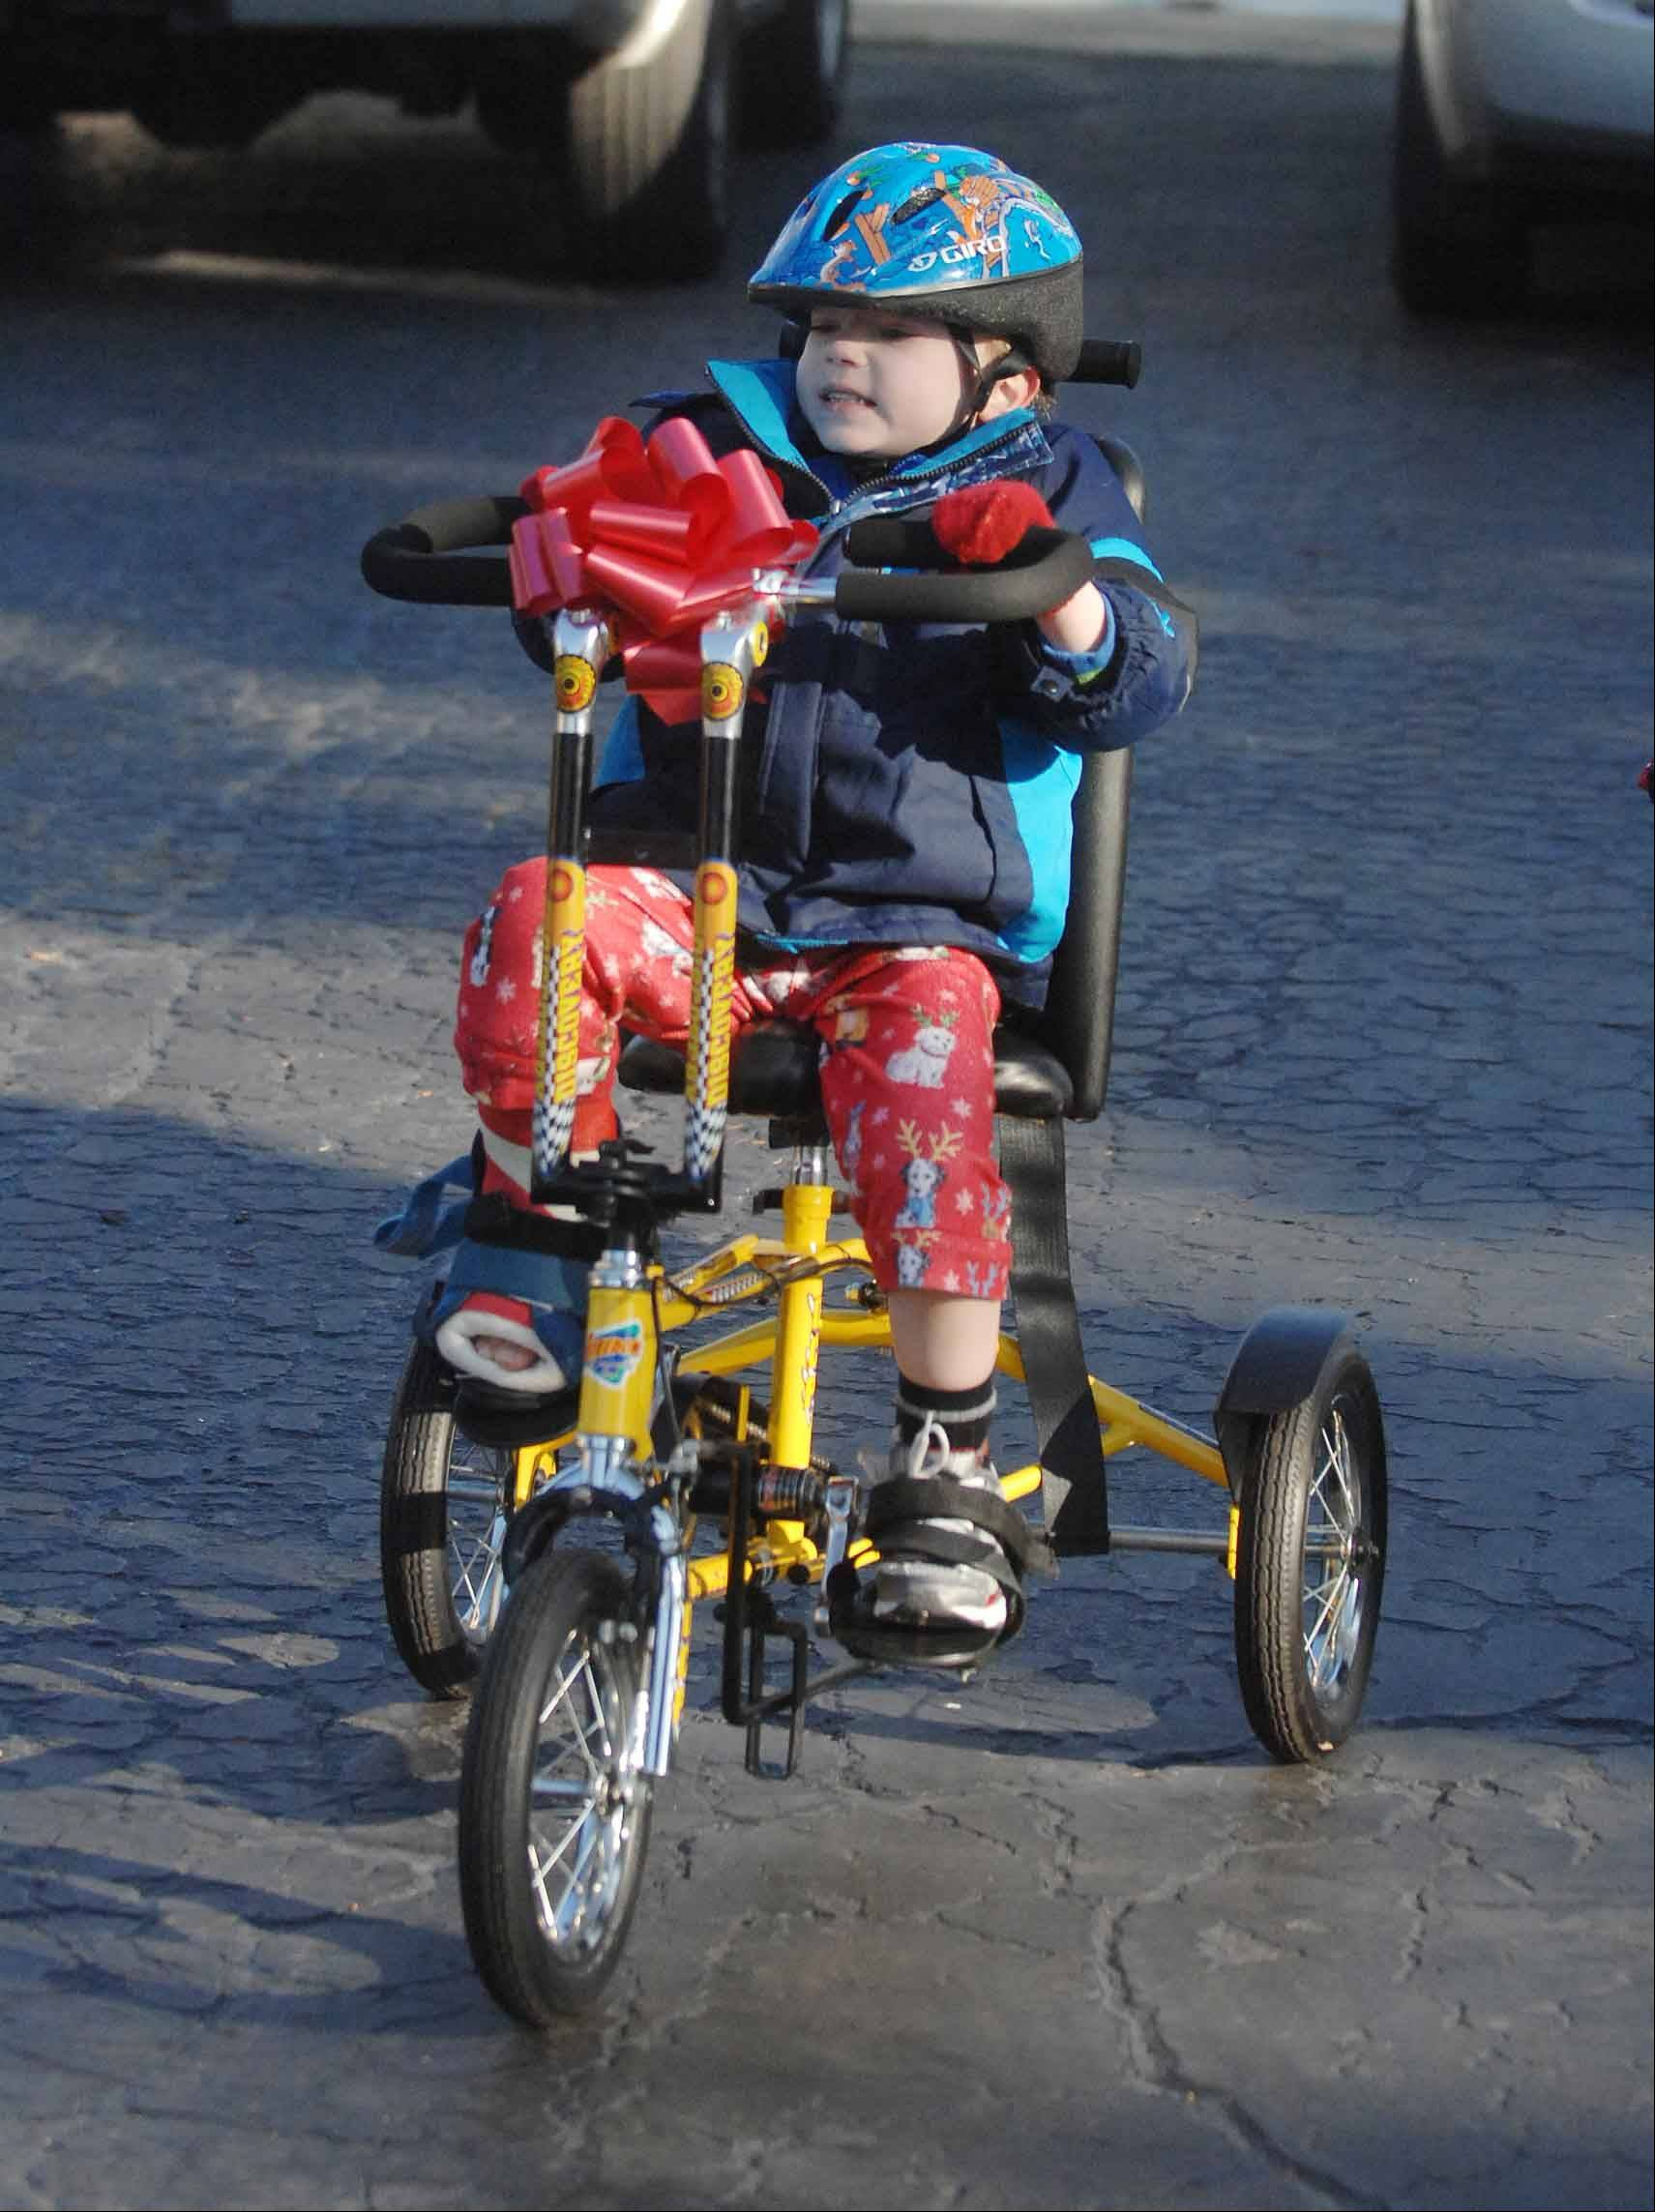 Owen Payton, 6, of an unincorporated area near West Chicago, rides a therapeutic bike he received for Christmas 2011 from Project Mobility. Owen's family is raising money with a bowling fundraiser Sunday for a heart transplant Owen is waiting to receive.